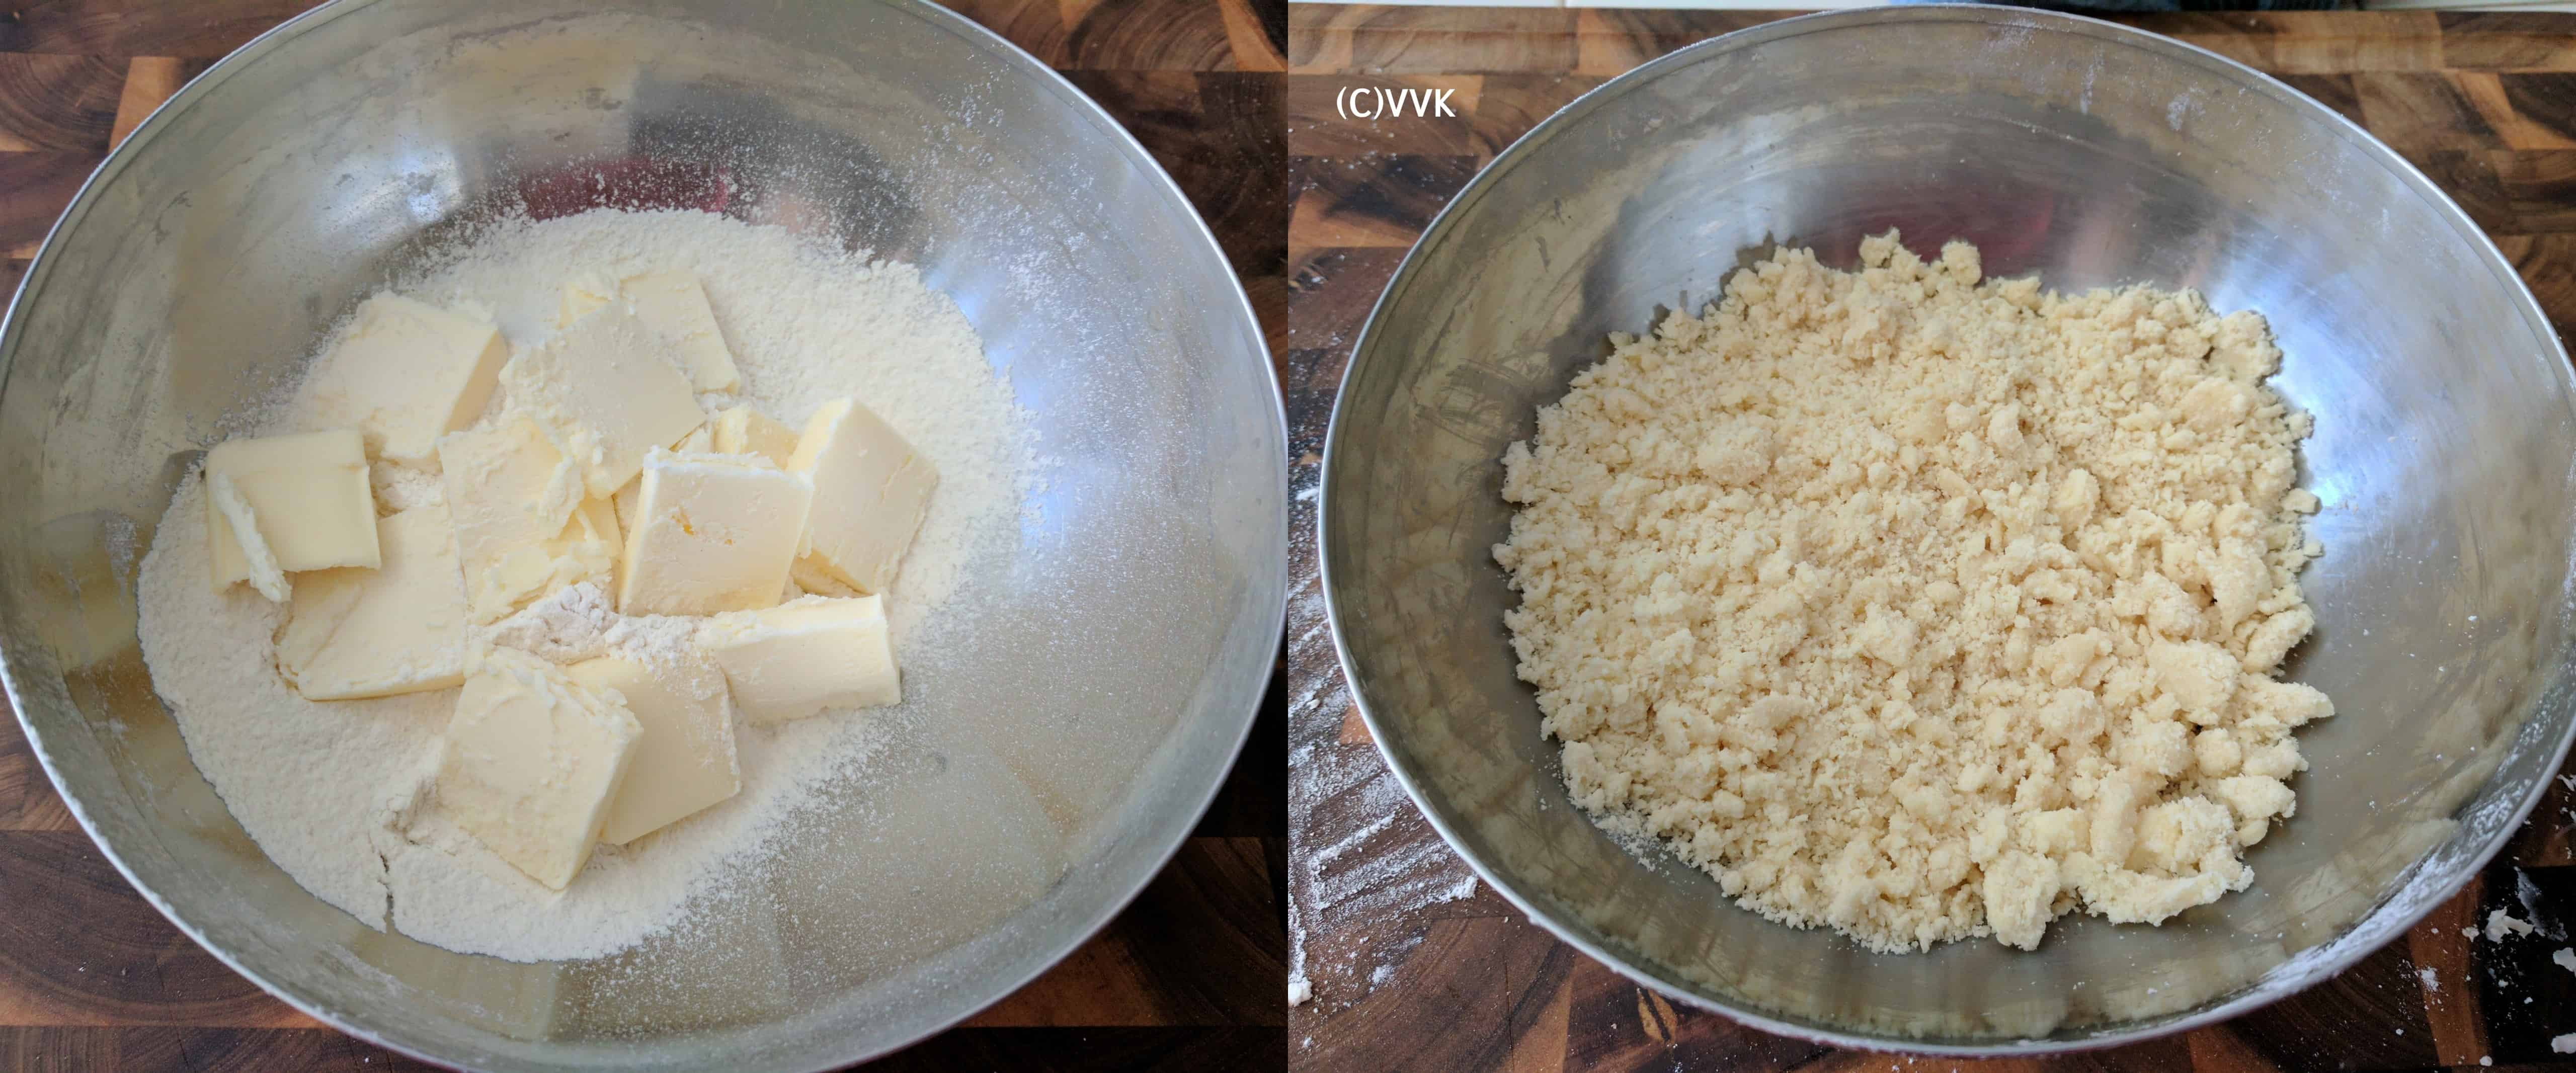 Addin flour, cubed butter, and the salt into a mixing bowl